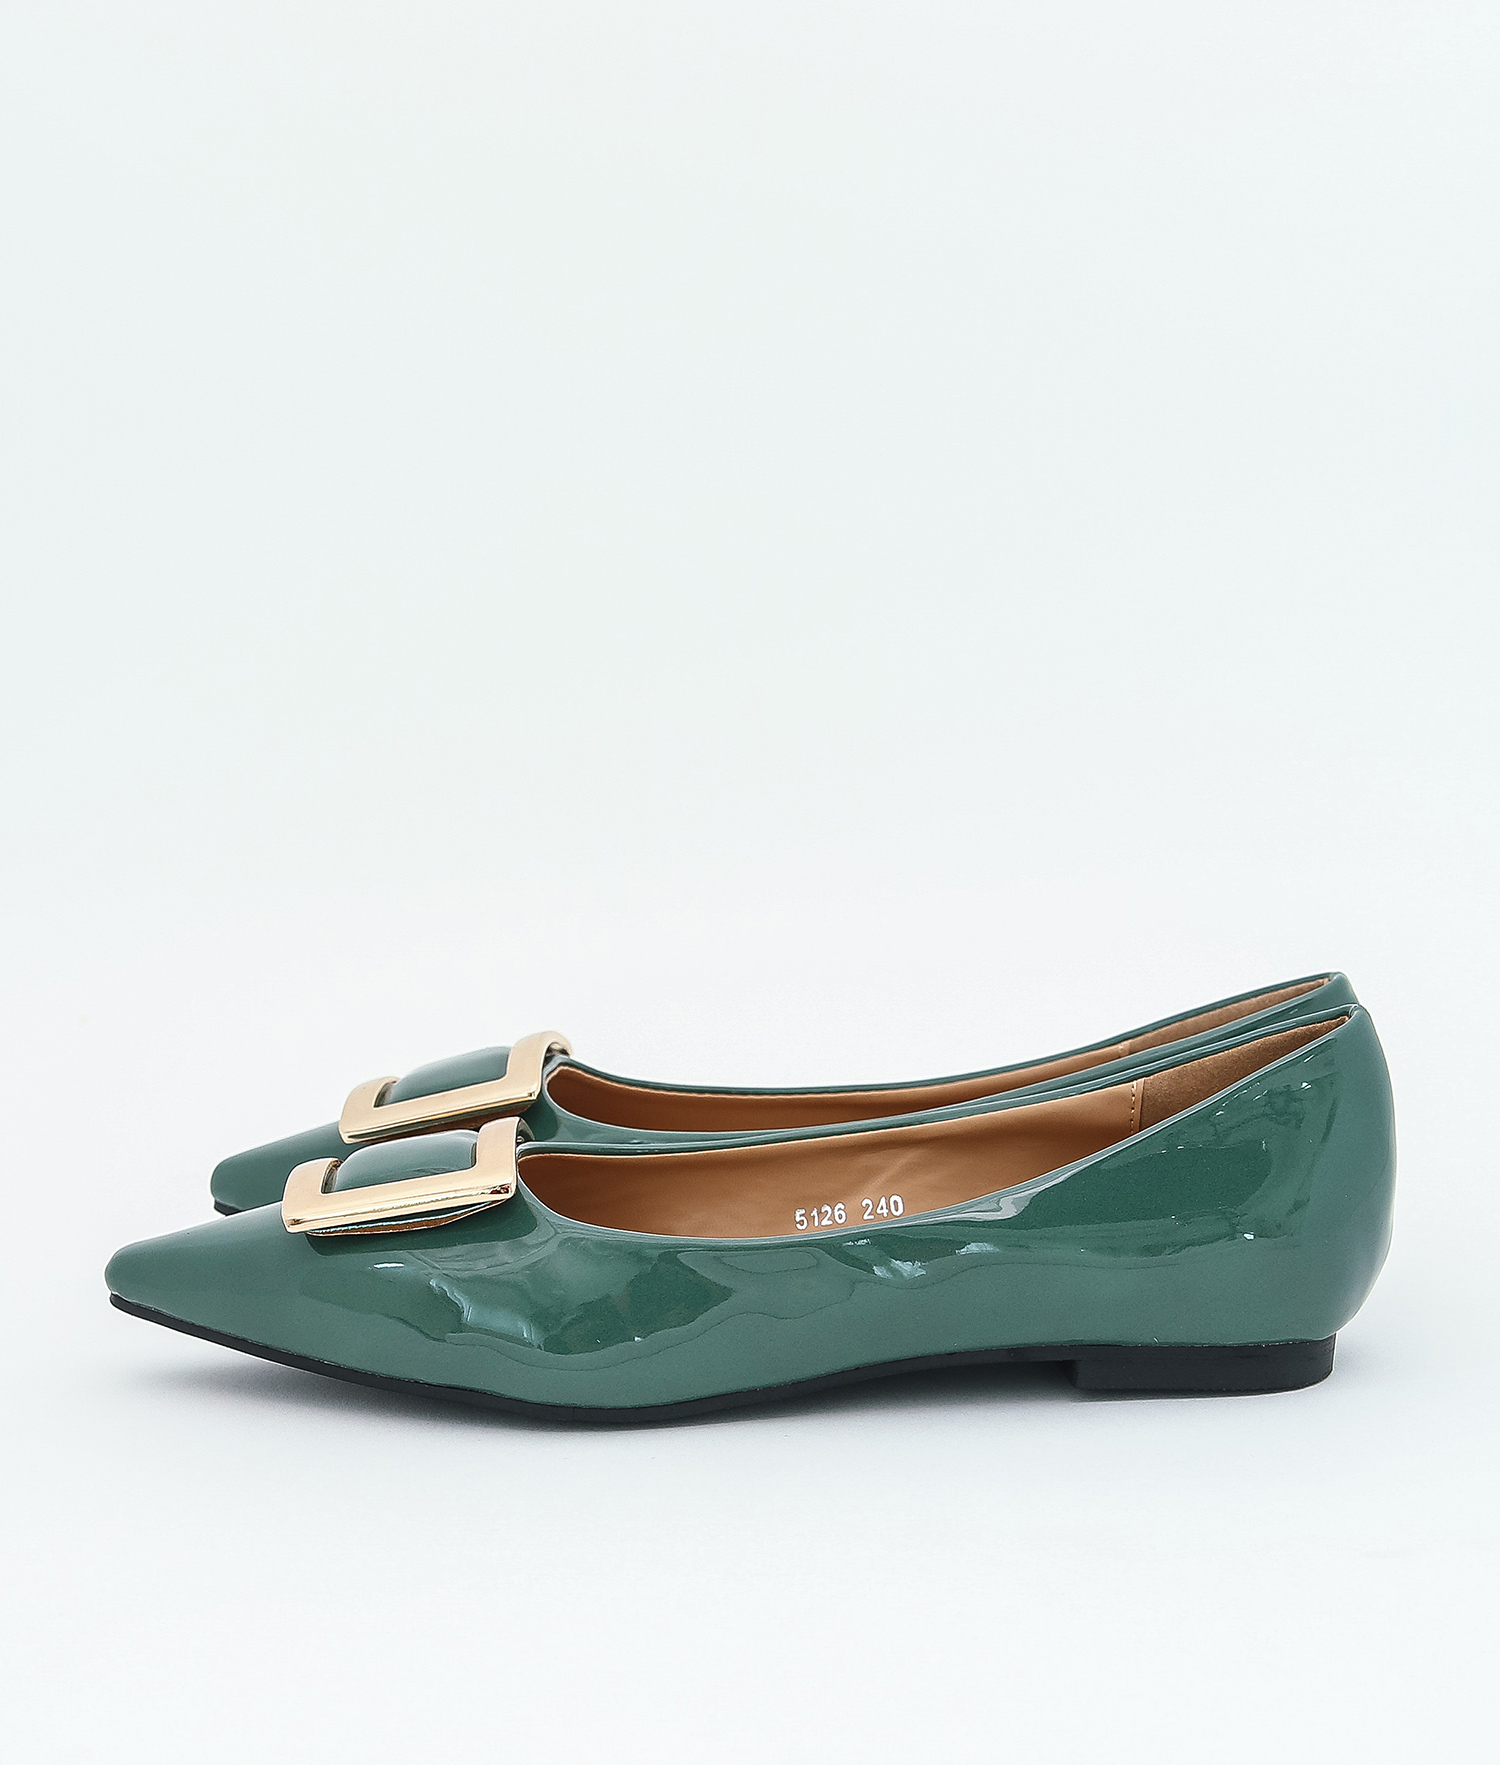 AnnaKastle Womens Patent Pointed Toe Ballet Flats Green